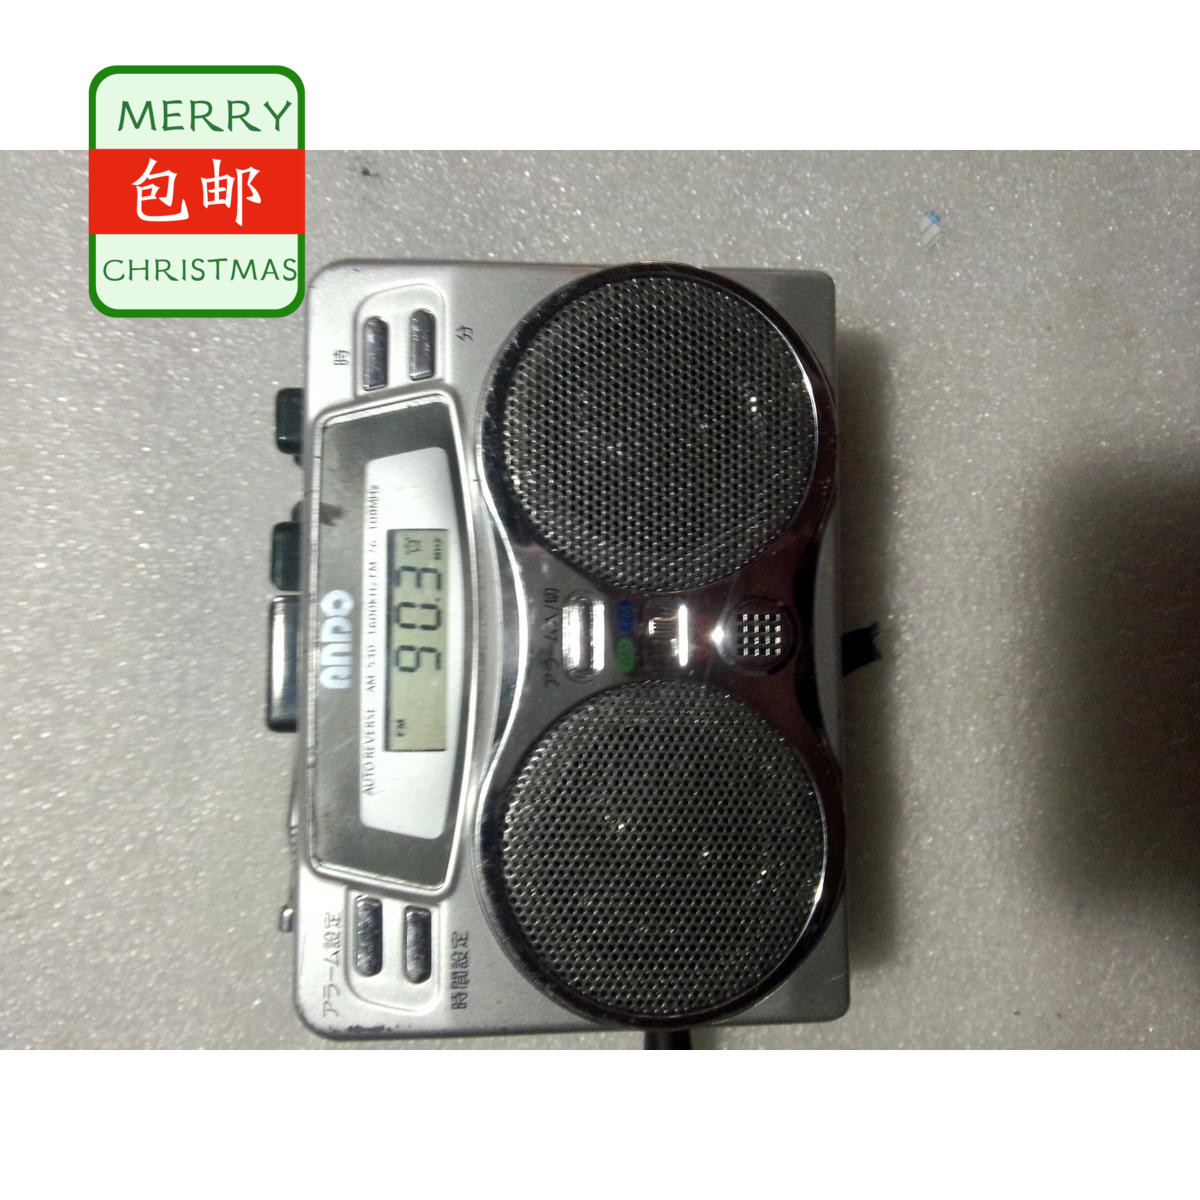 [Secondhand products]Japanese tape drive FM`AM radio high fidelity speaker